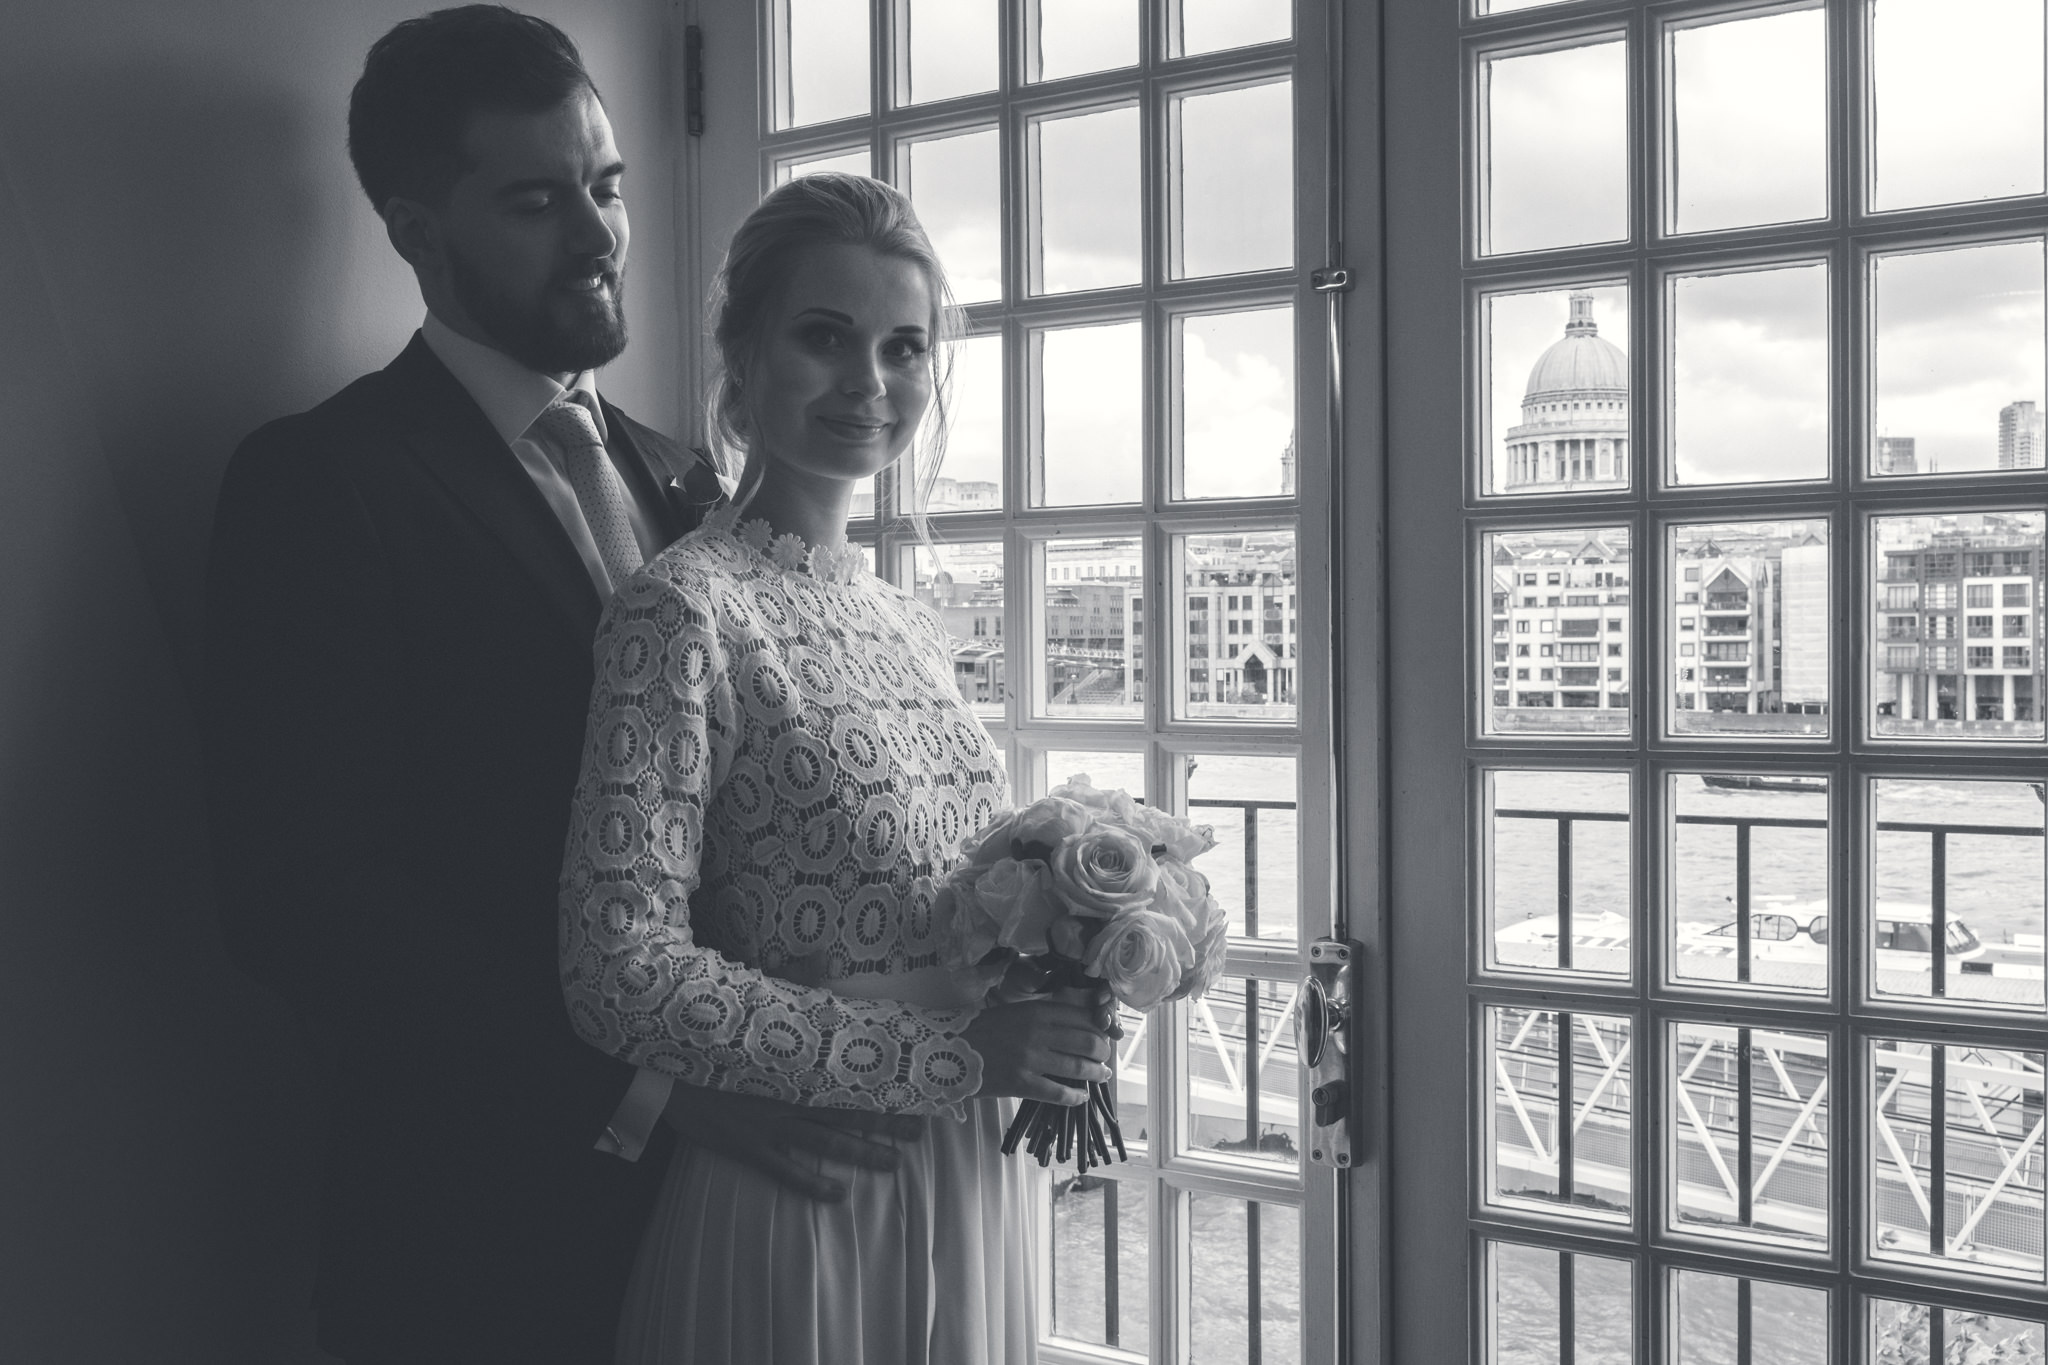 London Wedding Photographer - The Swan at Shakespeare's Globe